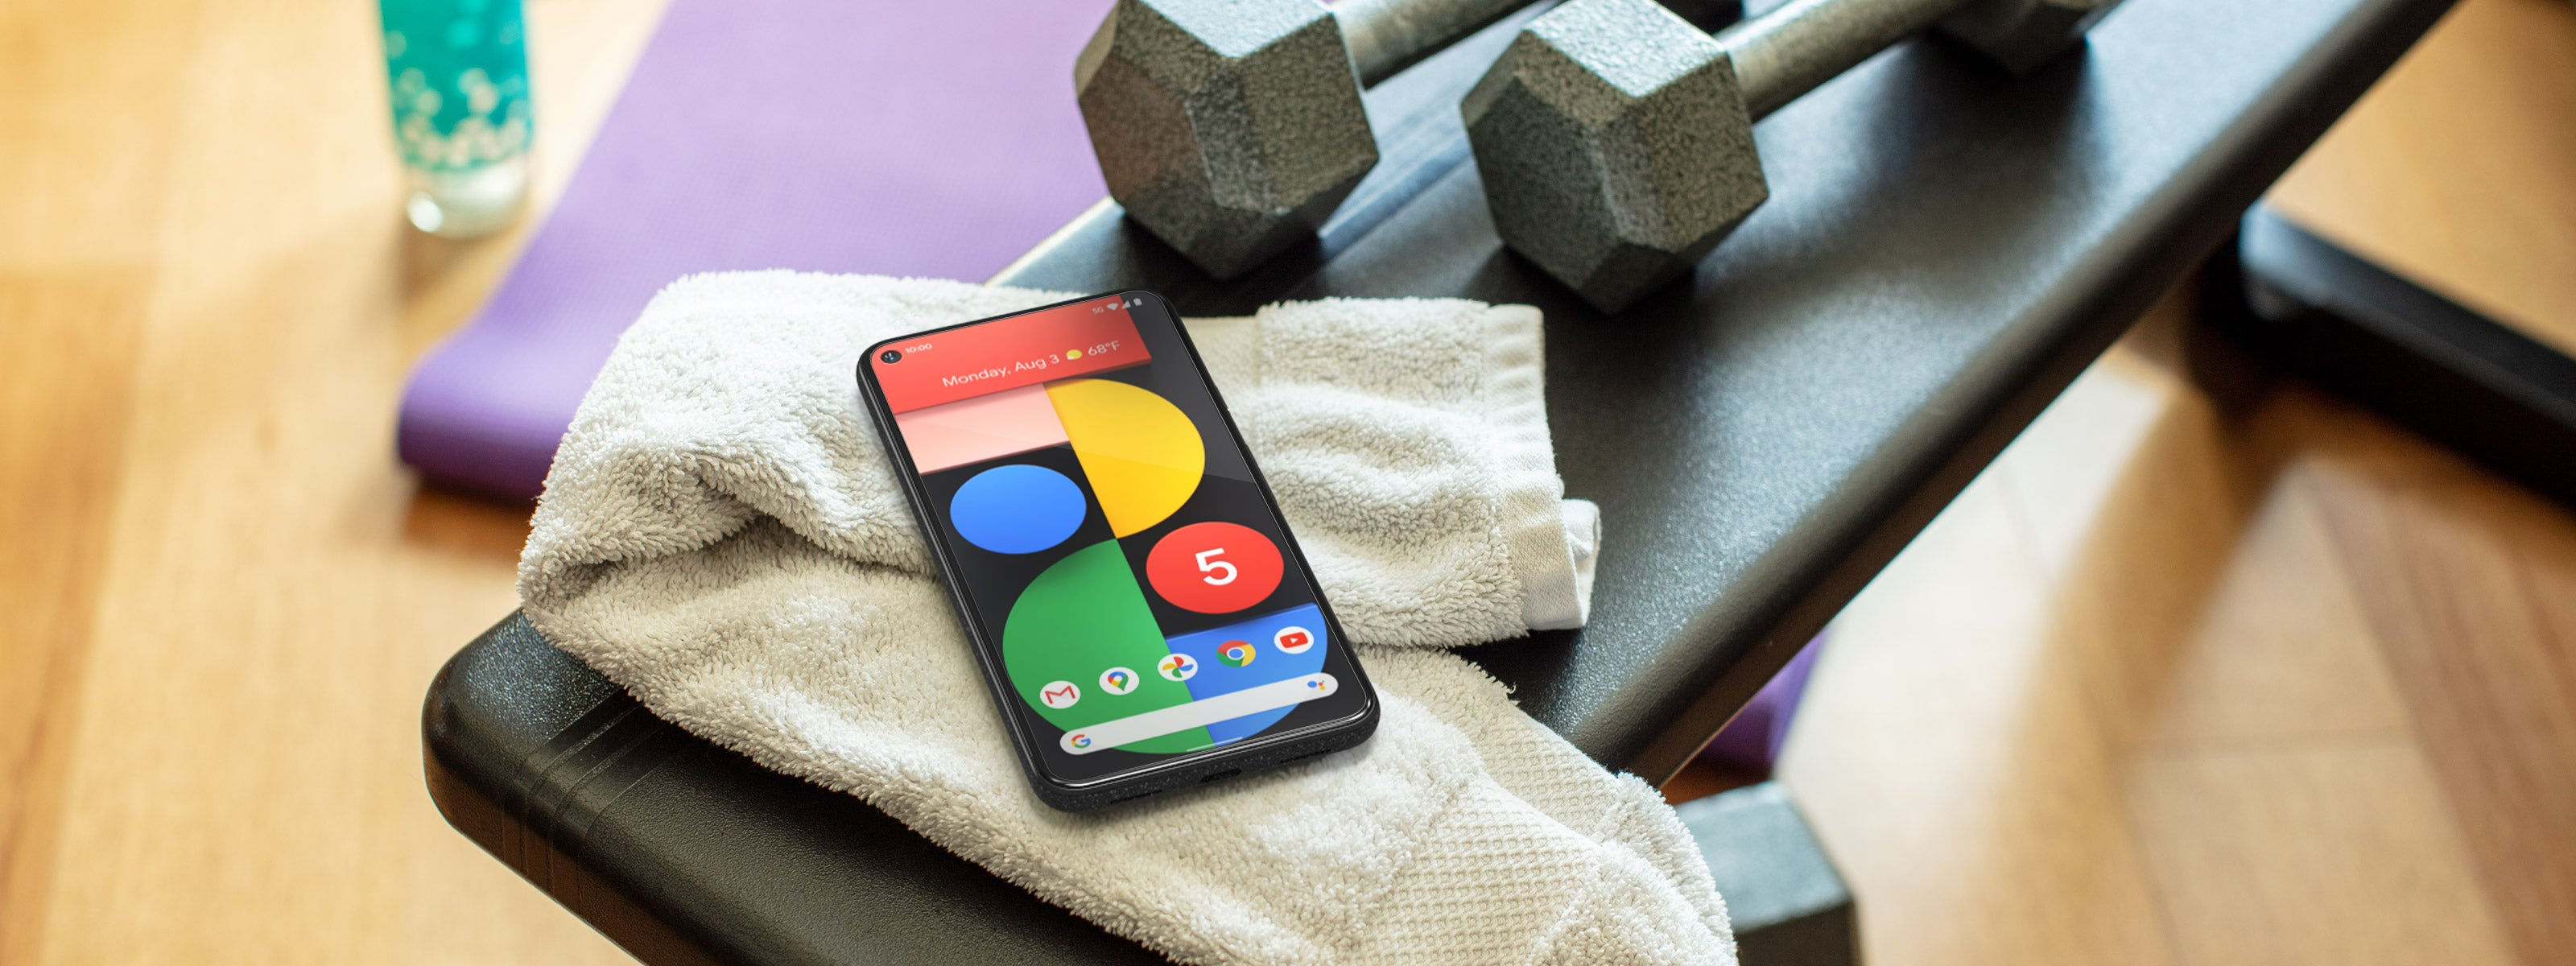 pixel 5 with workout equipment